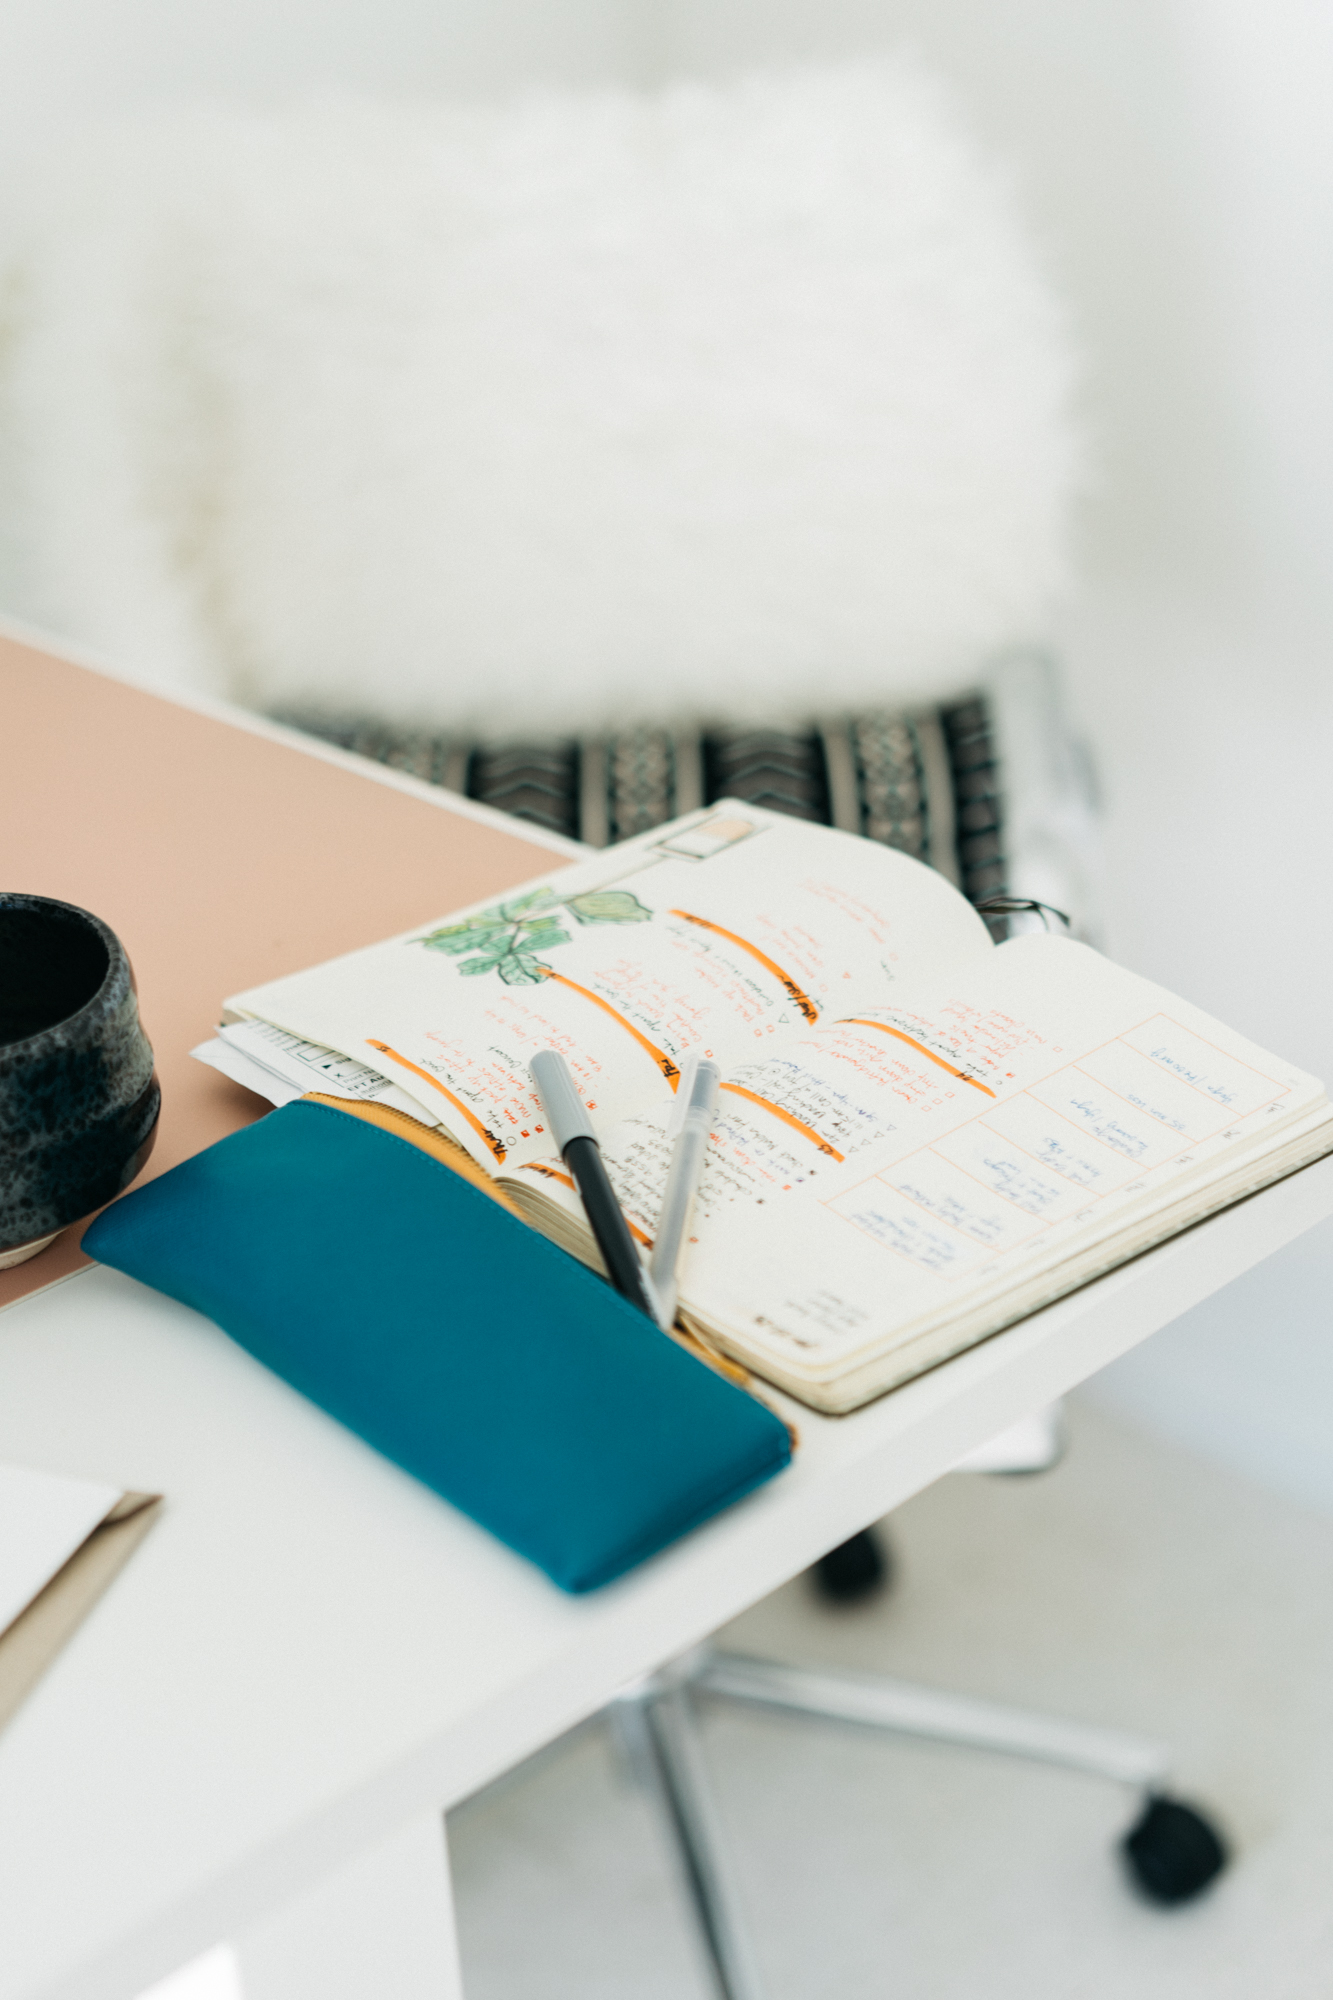 5. MYBULLET JOURNAL - I often travel without my husband and kids for work which is often the perfect opportunity for me to spend some time planning, writing, and reflecting.